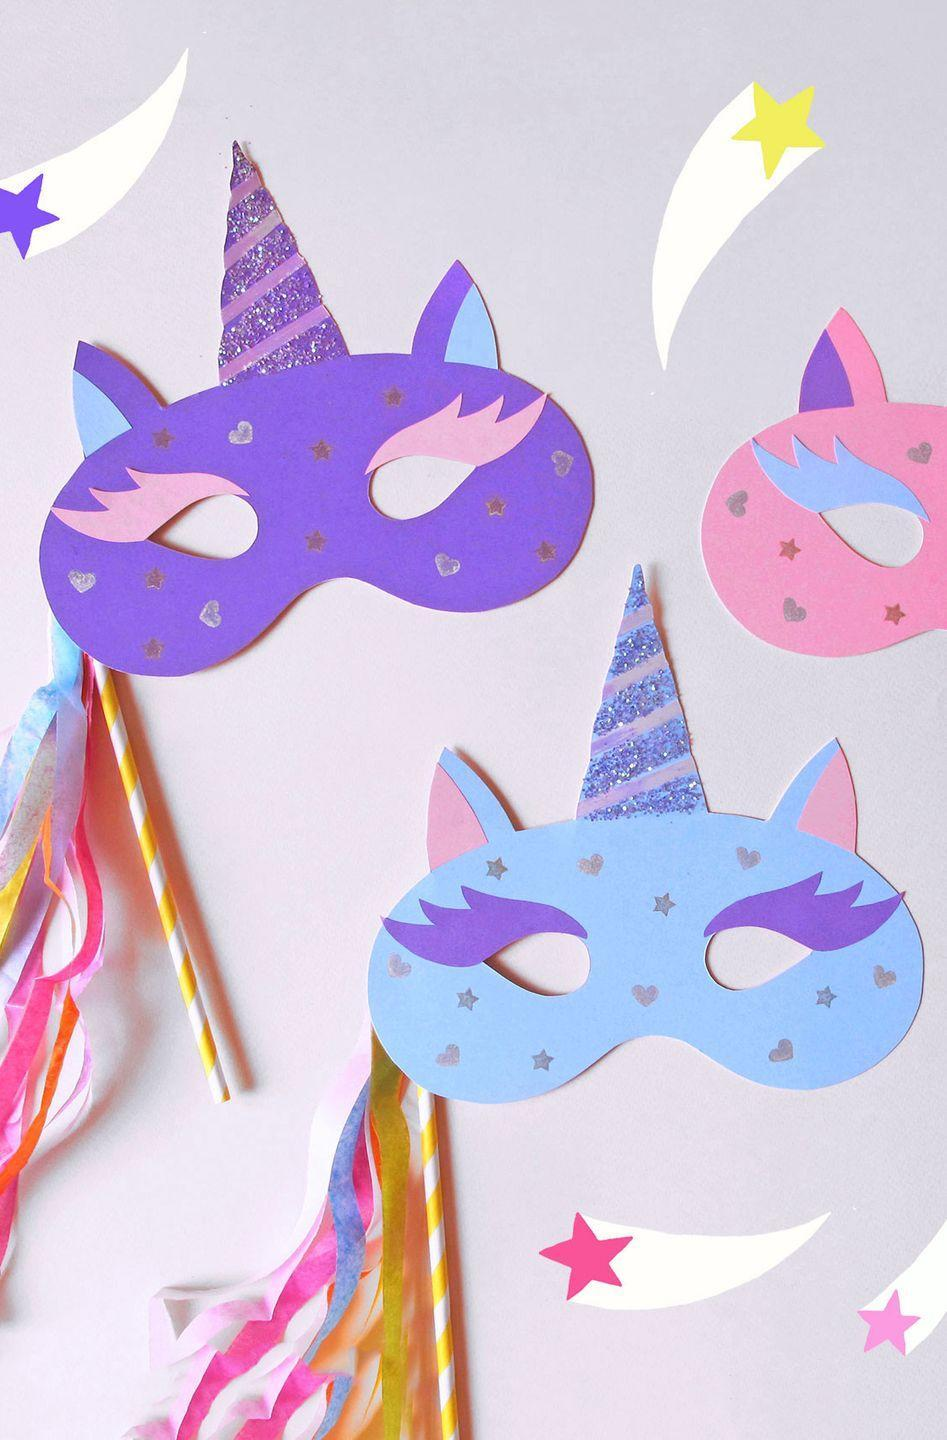 "<p>These glittery unicorn masks are so easy to assemble. No magic necessary!</p><p><strong>Get the tutorial at <a href=""https://paperchase.co.uk/the-journal/how-to-make-a-unicorn-mask/"" rel=""nofollow noopener"" target=""_blank"" data-ylk=""slk:Paperchase"" class=""link rapid-noclick-resp"">Paperchase</a>.</strong></p><p><a class=""link rapid-noclick-resp"" href=""https://www.amazon.com/Card-Stock-Colorful-Assortment-101199/dp/B0006HXSU6/?tag=syn-yahoo-20&ascsubtag=%5Bartid%7C10050.g.3480%5Bsrc%7Cyahoo-us"" rel=""nofollow noopener"" target=""_blank"" data-ylk=""slk:SHOP CARD STOCK PAPER"">SHOP CARD STOCK PAPER</a> </p>"